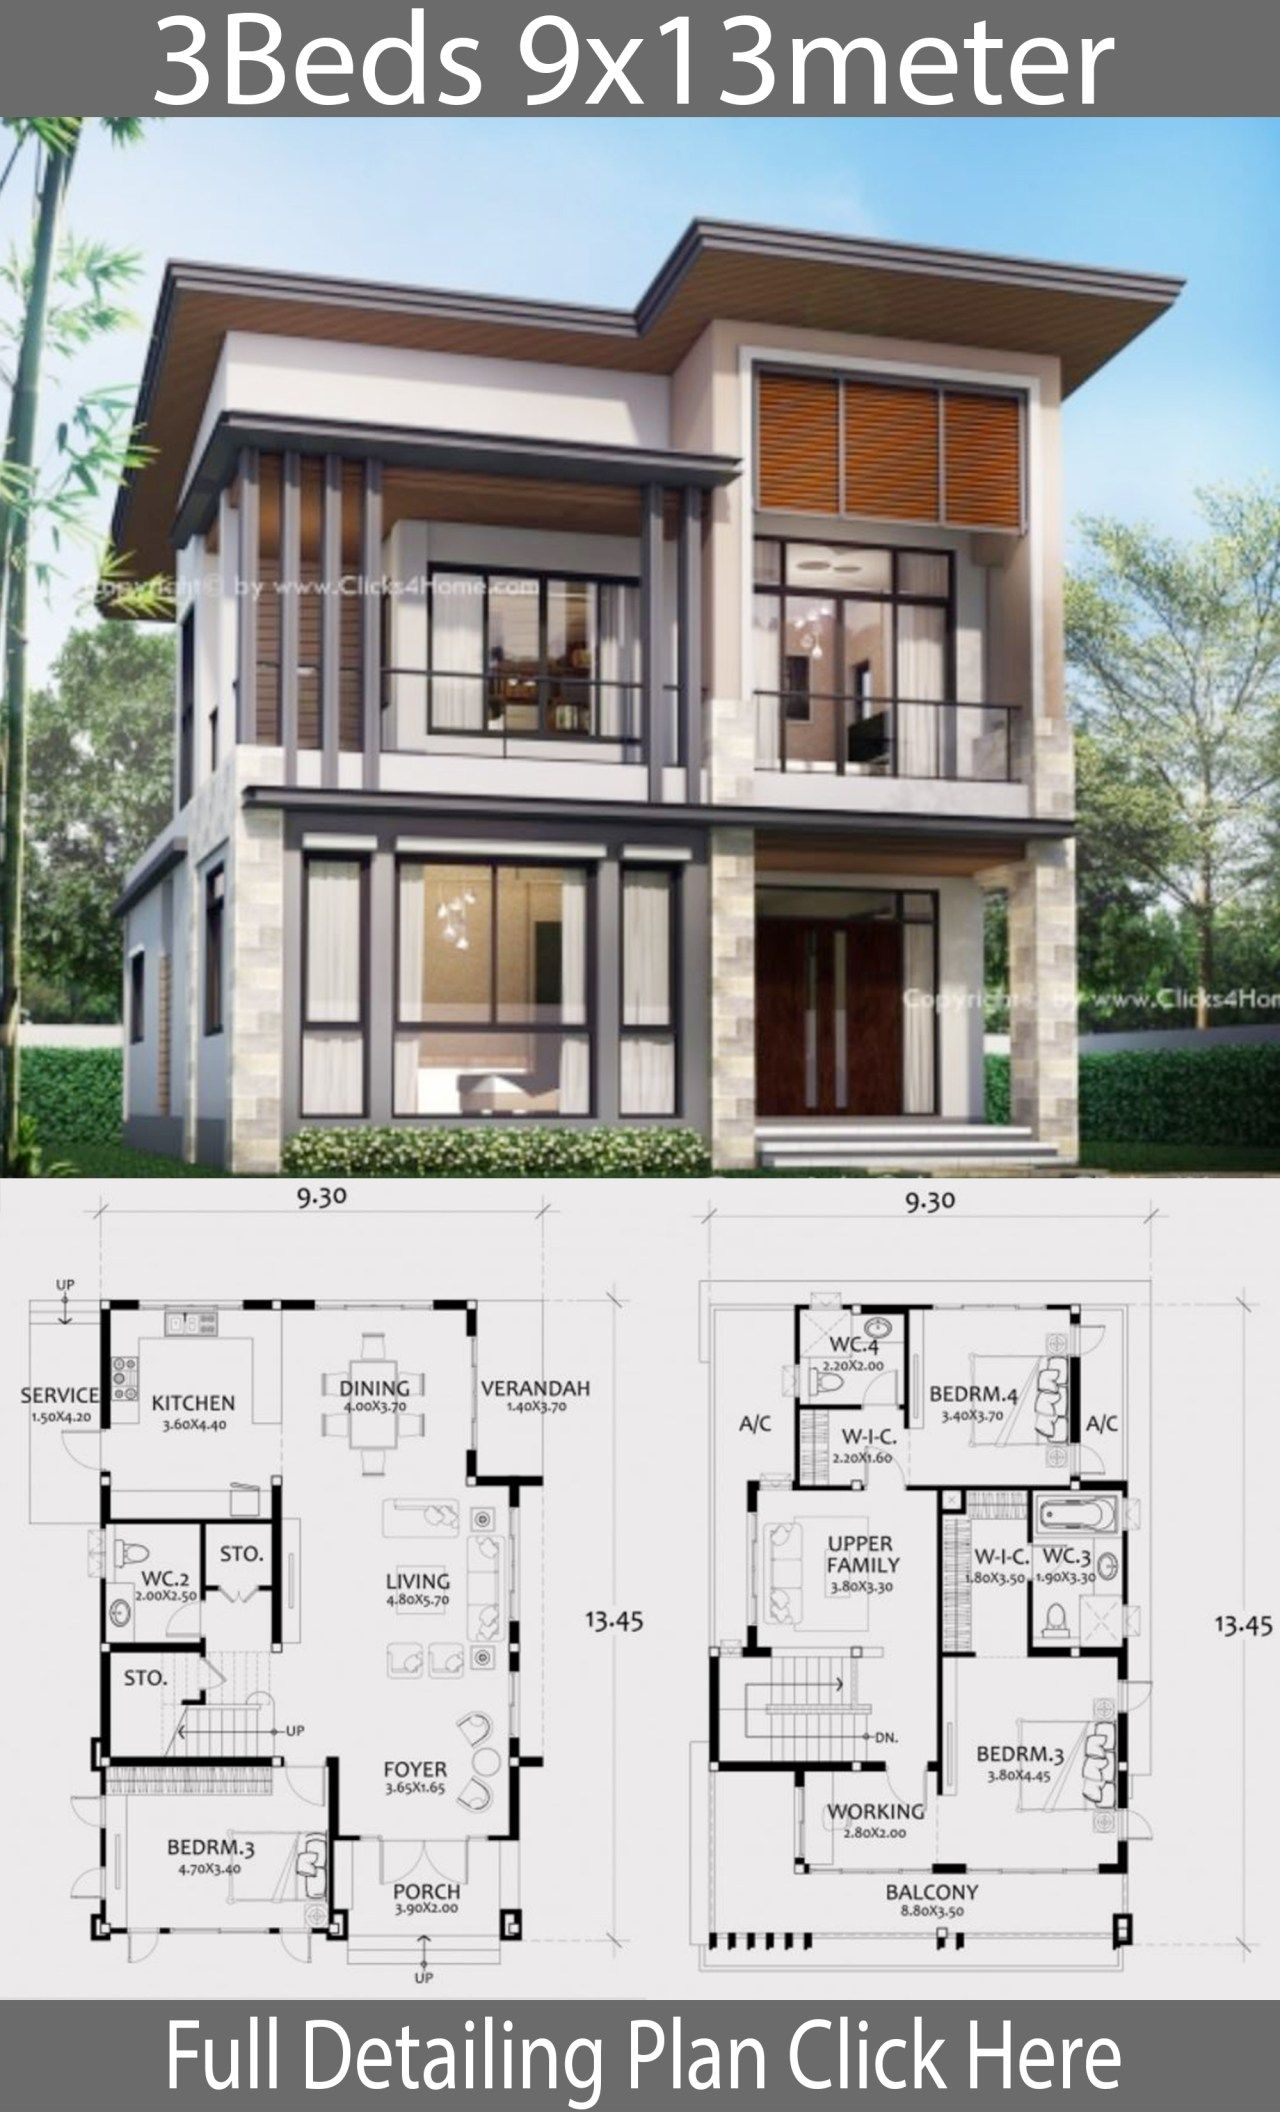 Home Design Plan 9x13m With 3 Bedrooms House Layout Plans Modern House Plans Home Design Plans